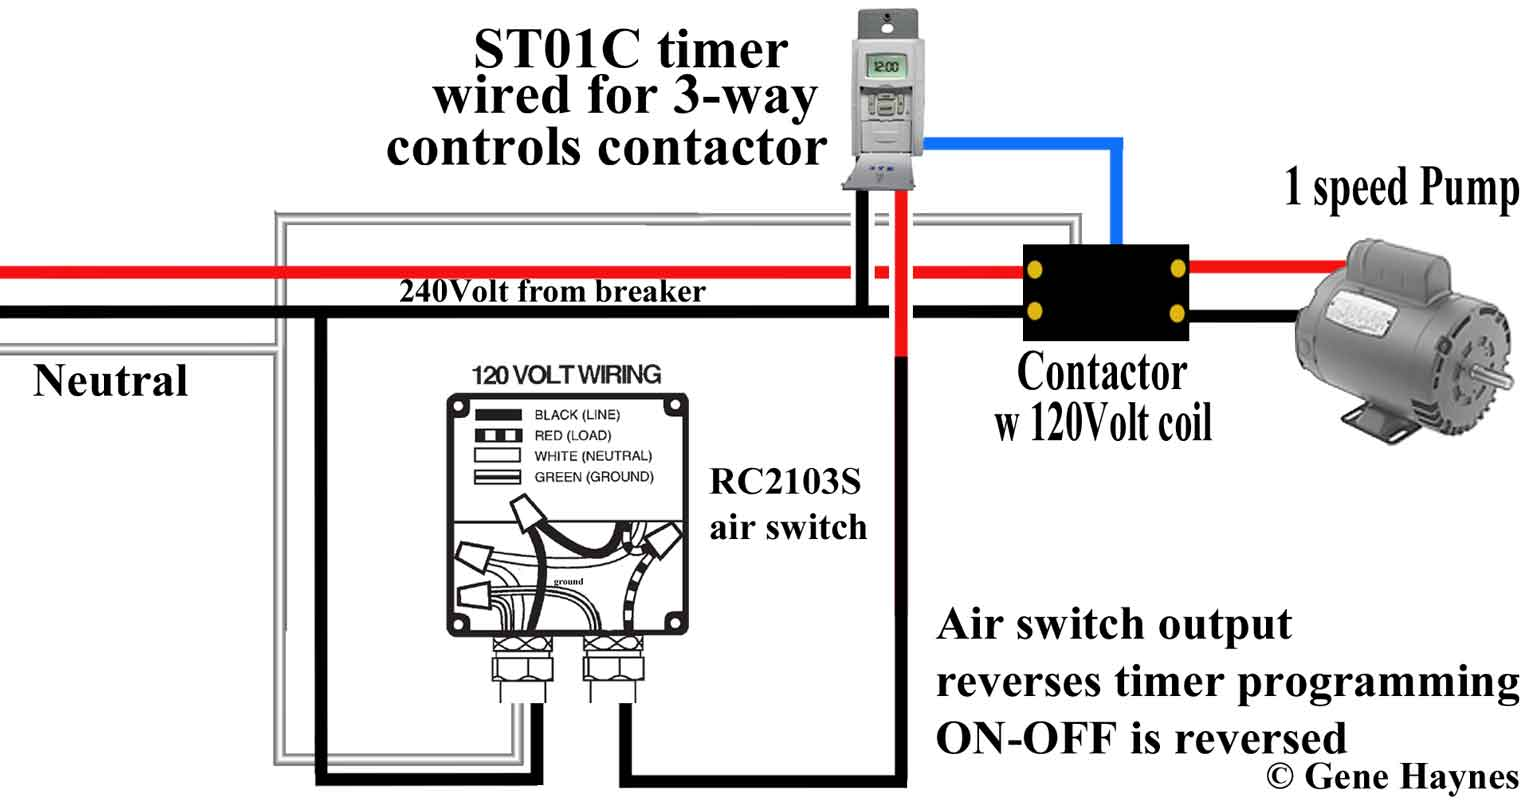 3 way wiring diagram for contactor electrical drawing wiring diagram how to wire water heater with two switches rh waterheatertimer org lighting contactor wiring diagram square d wiring diagram light switch asfbconference2016 Images